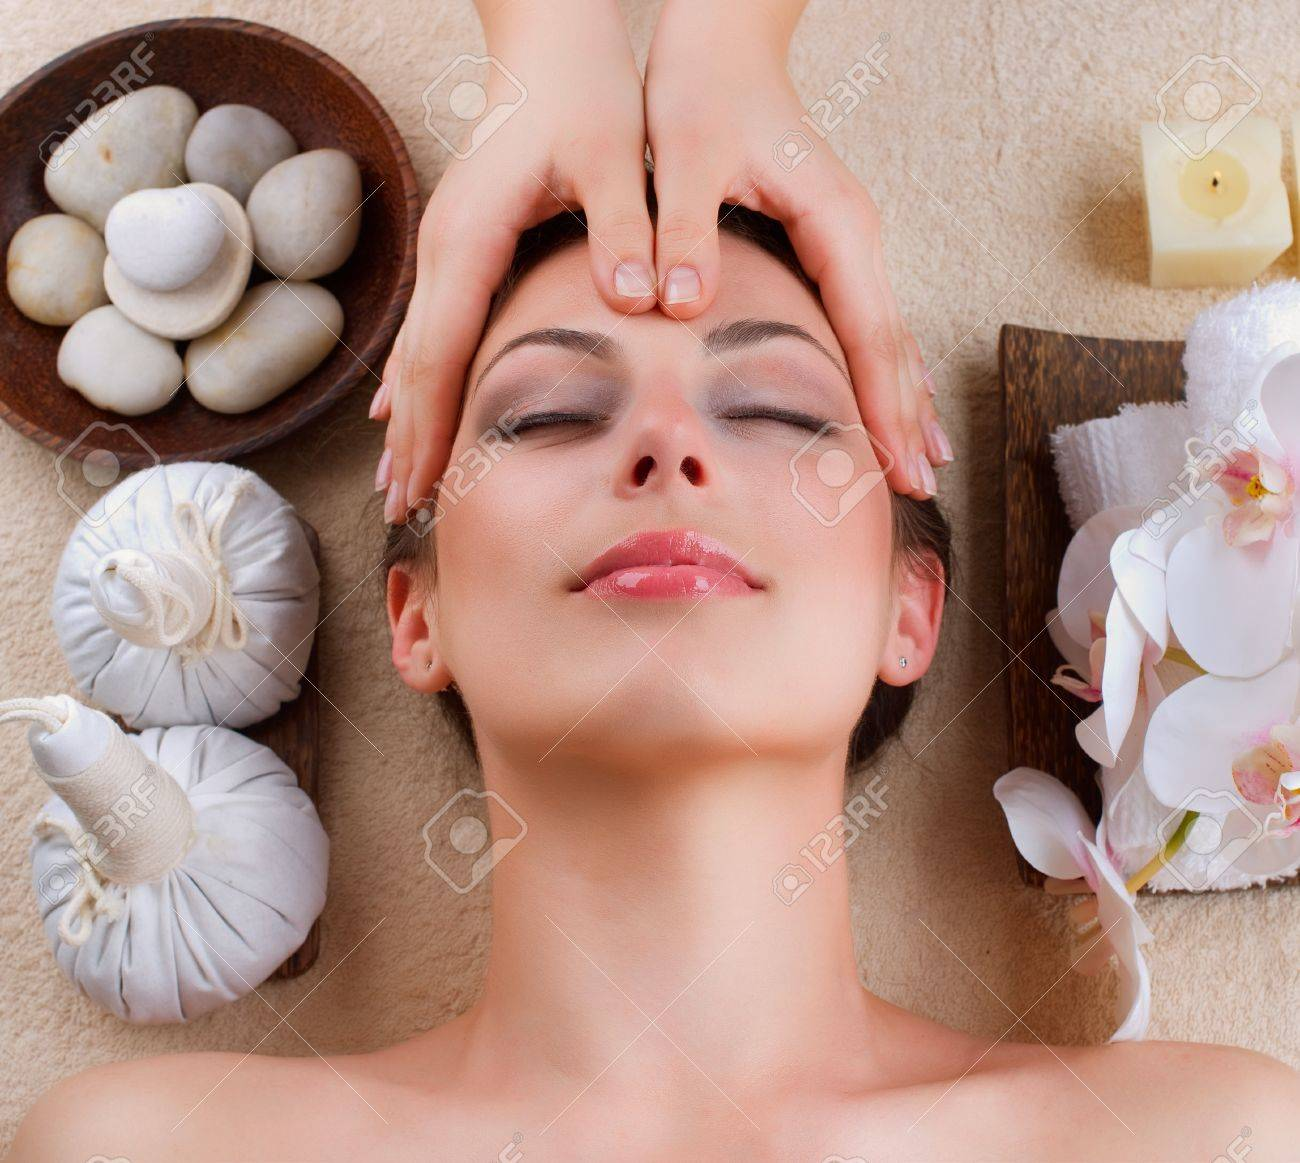 Facial Massage In Spa Salon Stock Photo Picture And Royalty Free Image Image 12862818